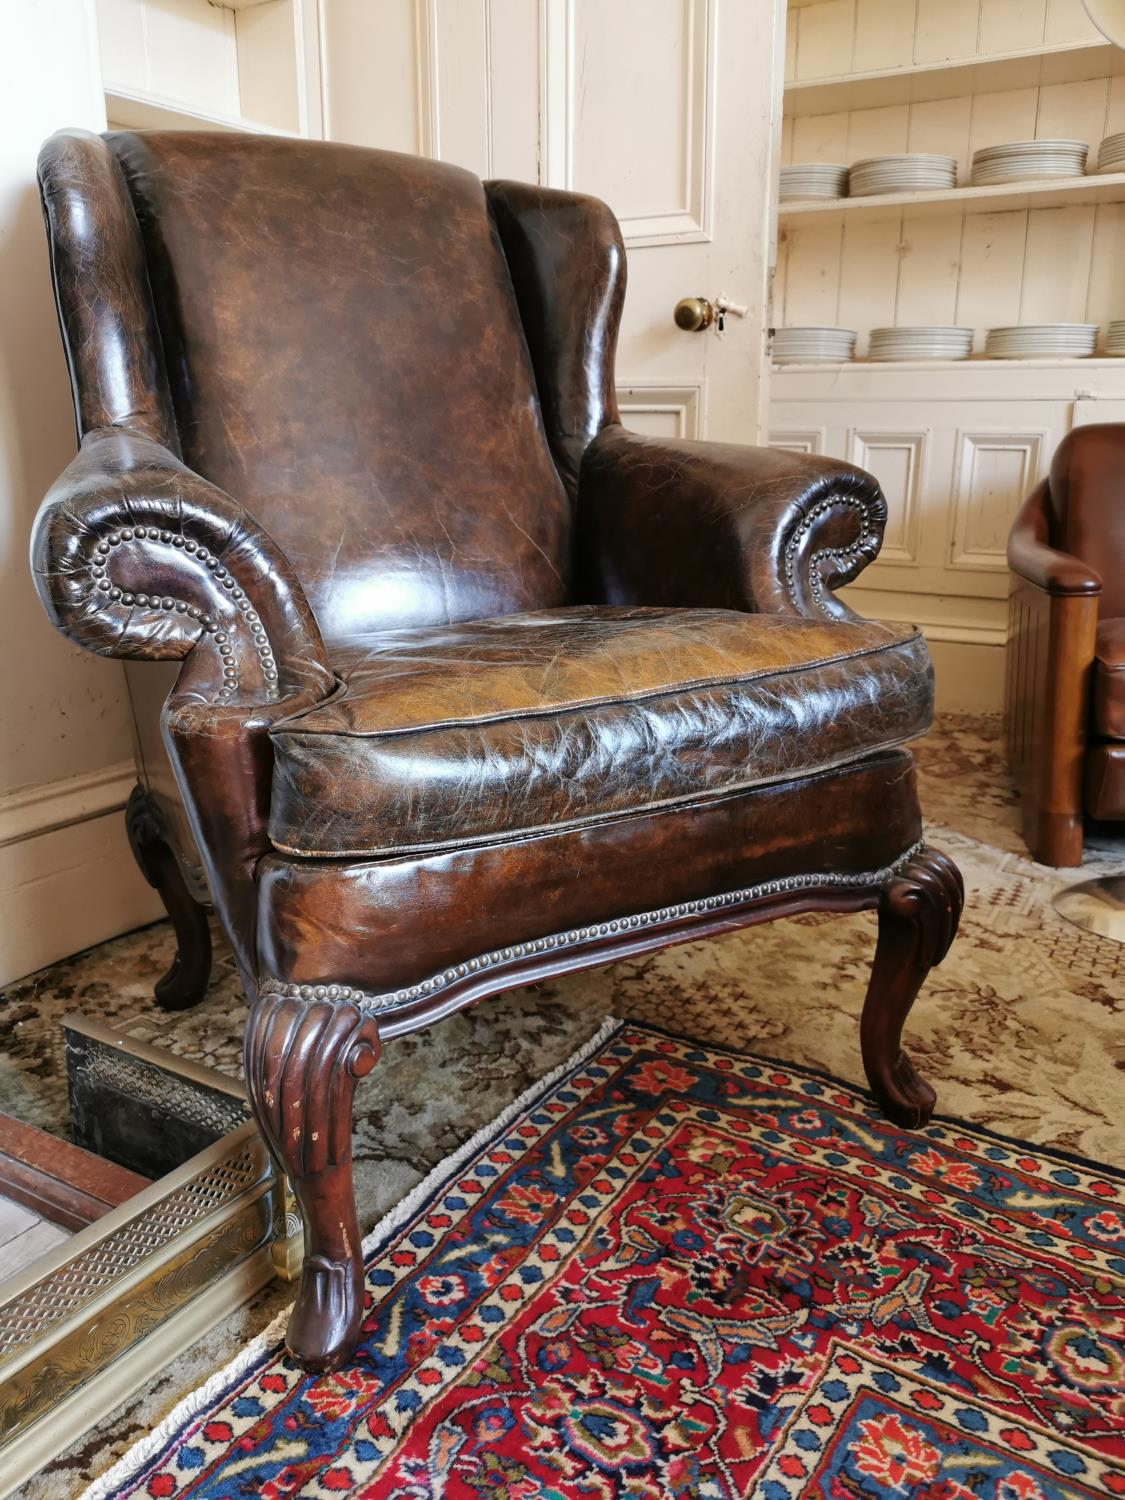 Superior quality pair of leather upholstered wing backed armchairs - Image 3 of 3